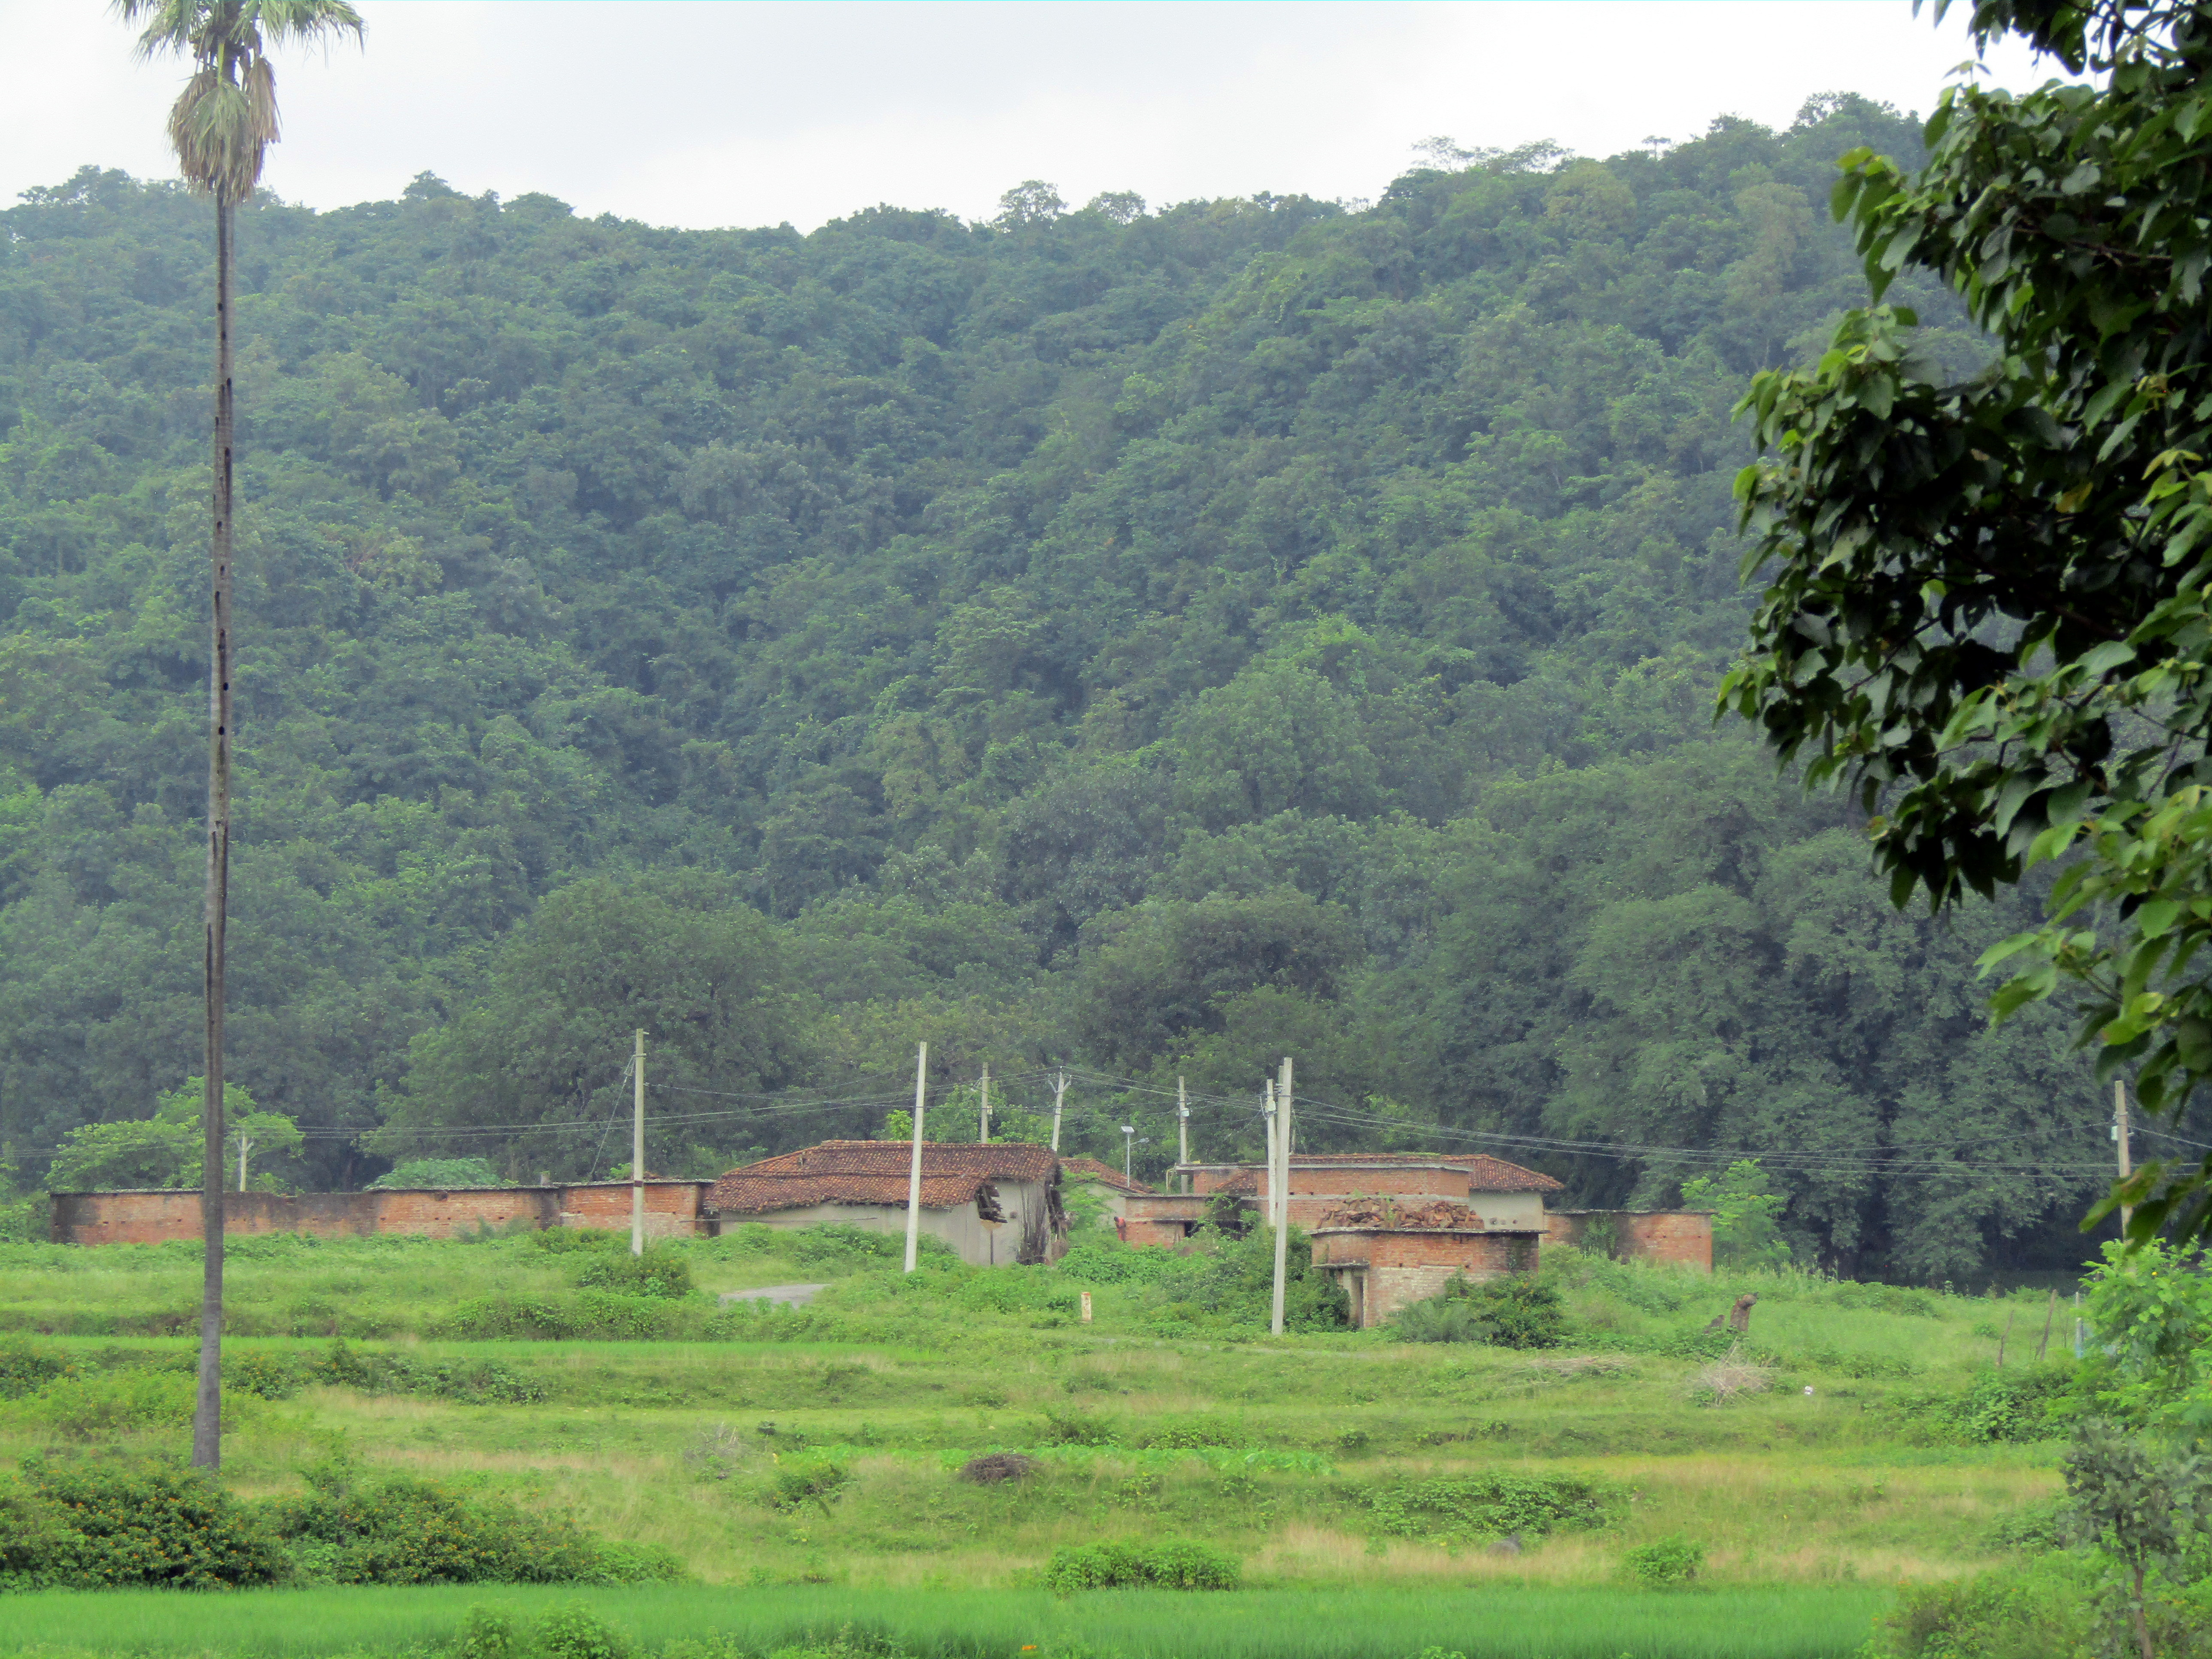 Jharkhand forest, farmland and villages in the path of Adani's next big coal mine